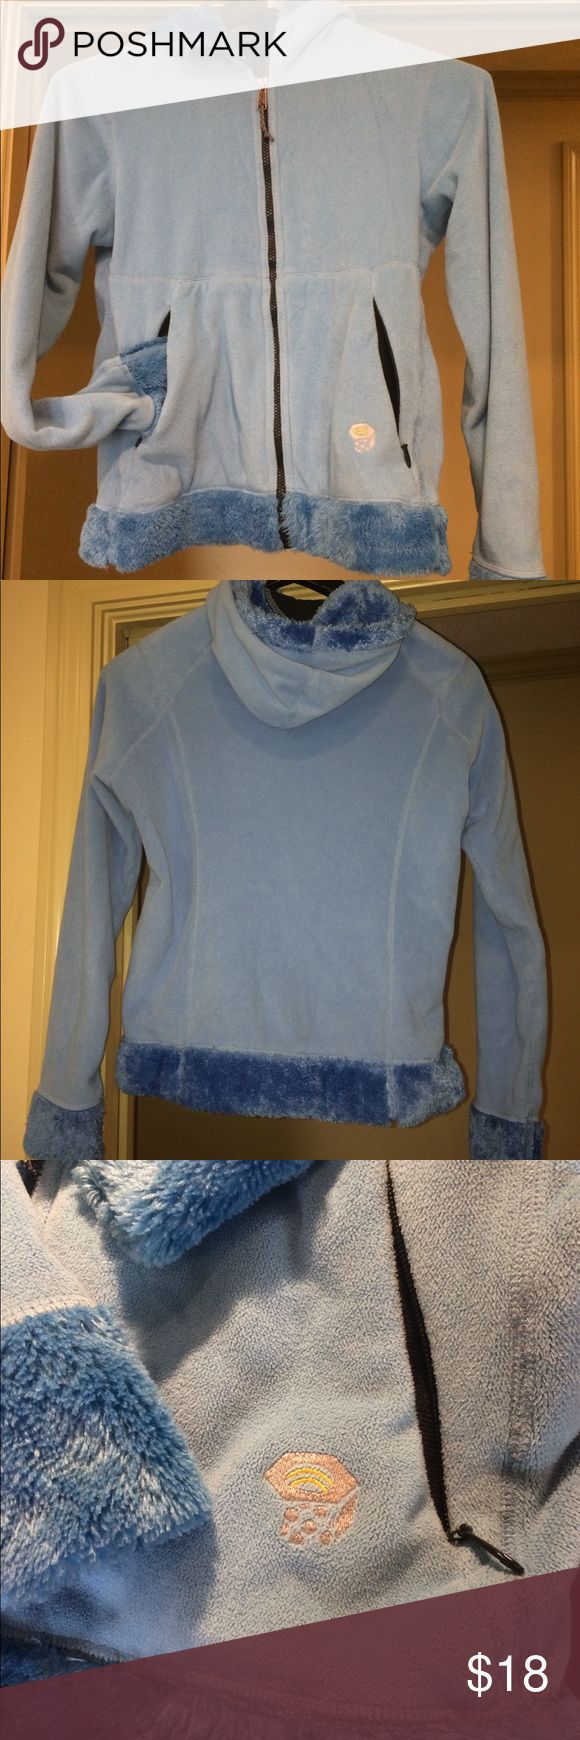 Blue Fleece Zip Up Mountain Hard Ware Sweater All blue zip up fleece like sweater jacket by Mountain Hard Ware. This is like with a very warm fuzzy material and lines the trim on the outer part. This is warmer than a normal north face fleece. Has adjustable waist to keep out cold and a second layer at the wrists to also do the same. Both outer pockets zip shut. Comes from a smoke free home. Mountain Hard Wear Jackets & Coats